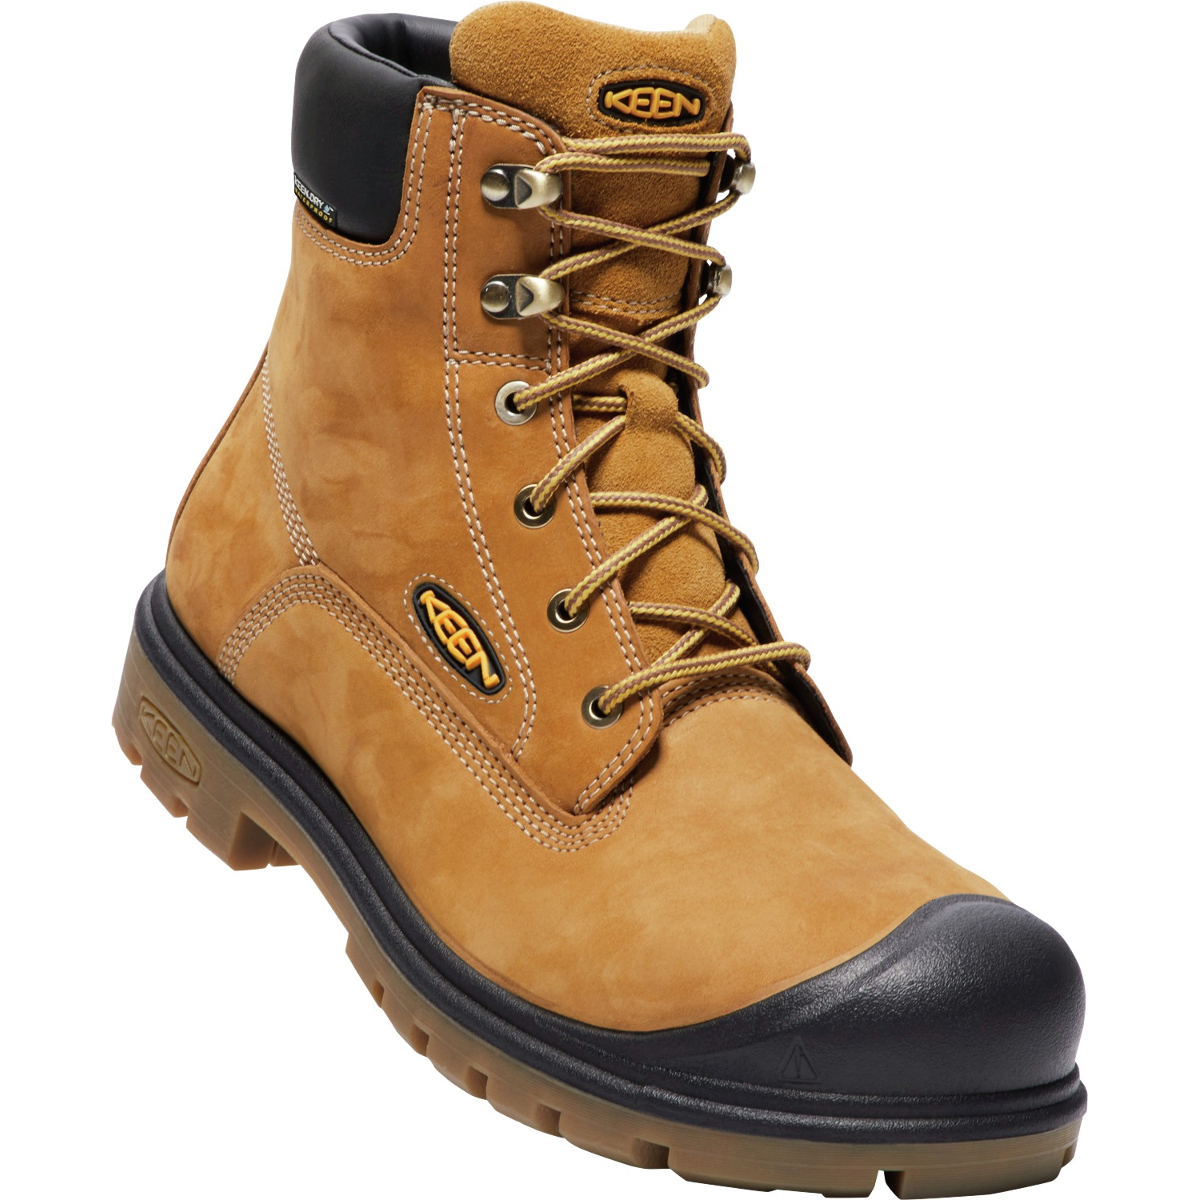 "Keen Men's Baltimore 6"" Waterproof Soft Toe Boot - Brown, 12"